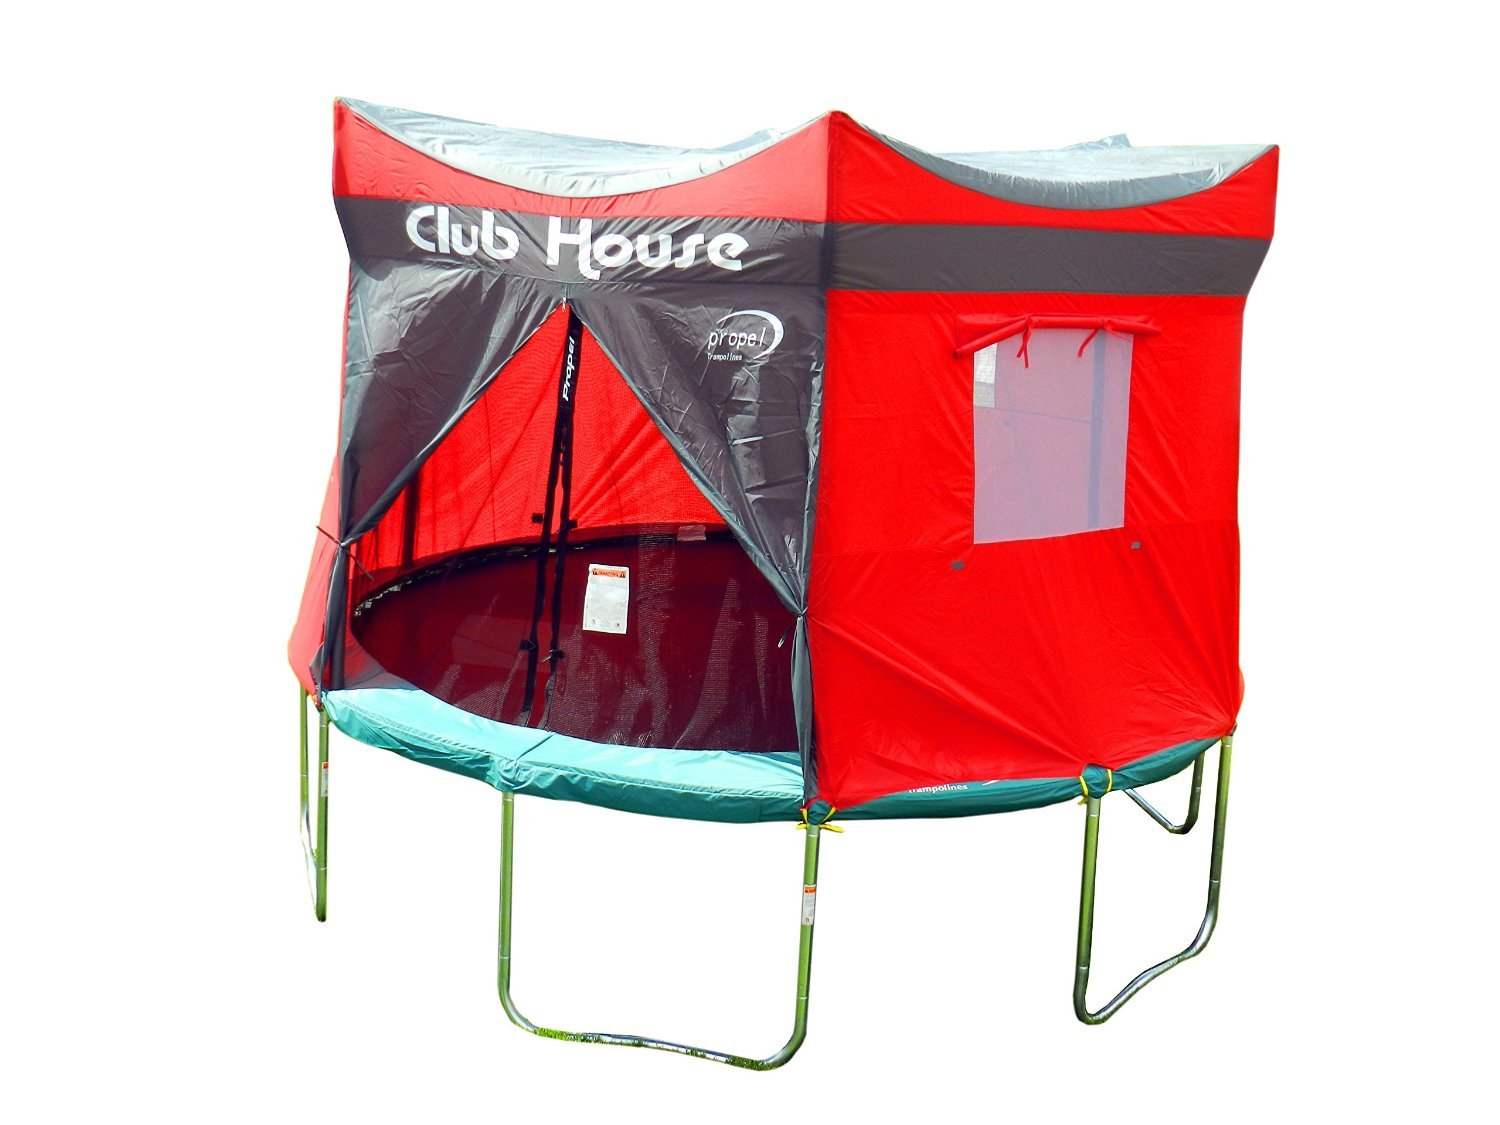 Clubhouse Tent Accessory Kit for Propel 12' Trampoline with 6 pole enclosure - TENT ONLY by Propel (Image #5)